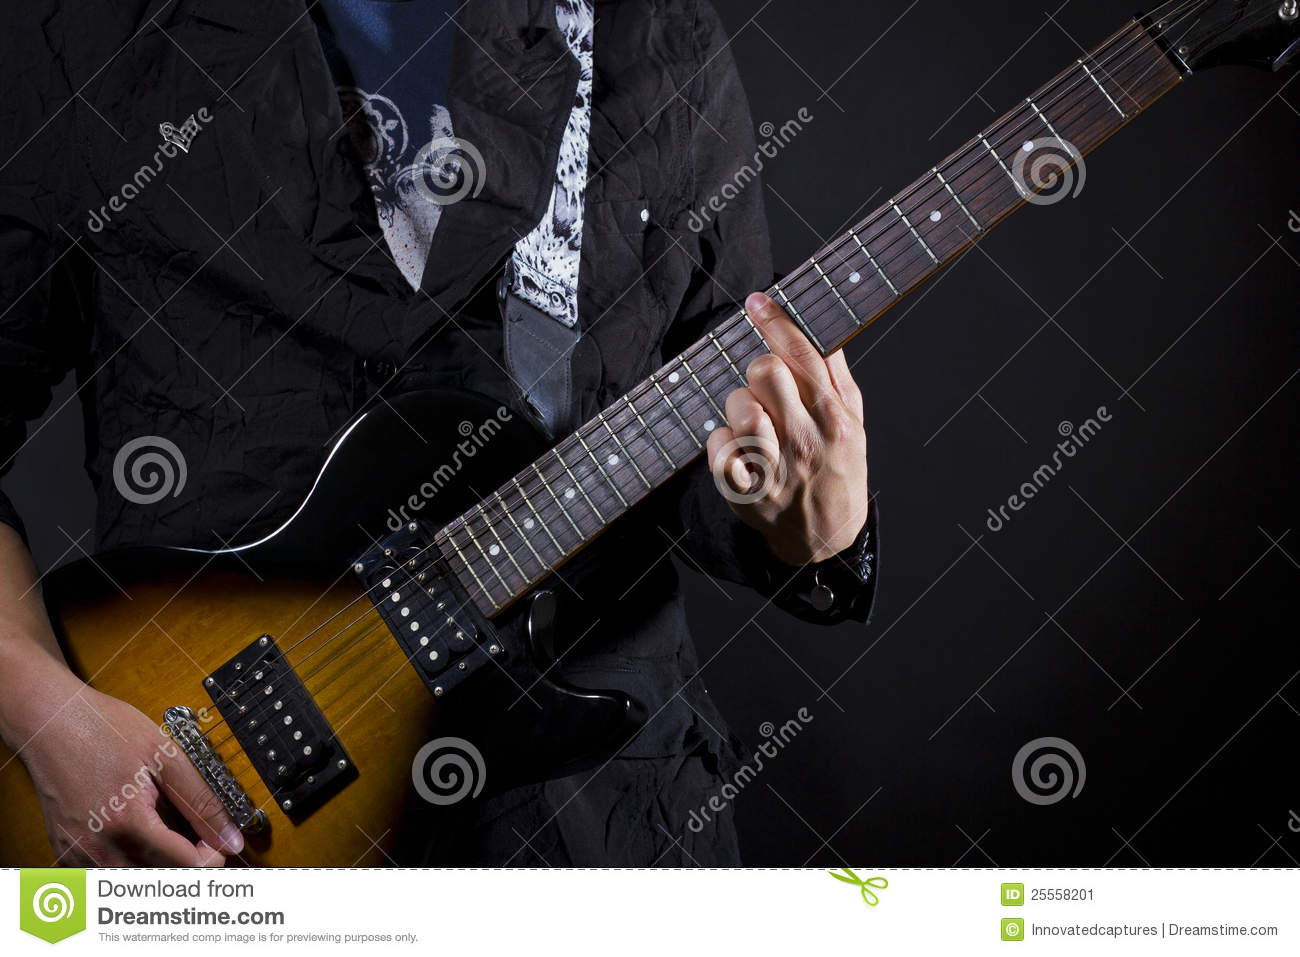 Guitar Power Chords Stock Image Image Of Fingers Harmony 25558201